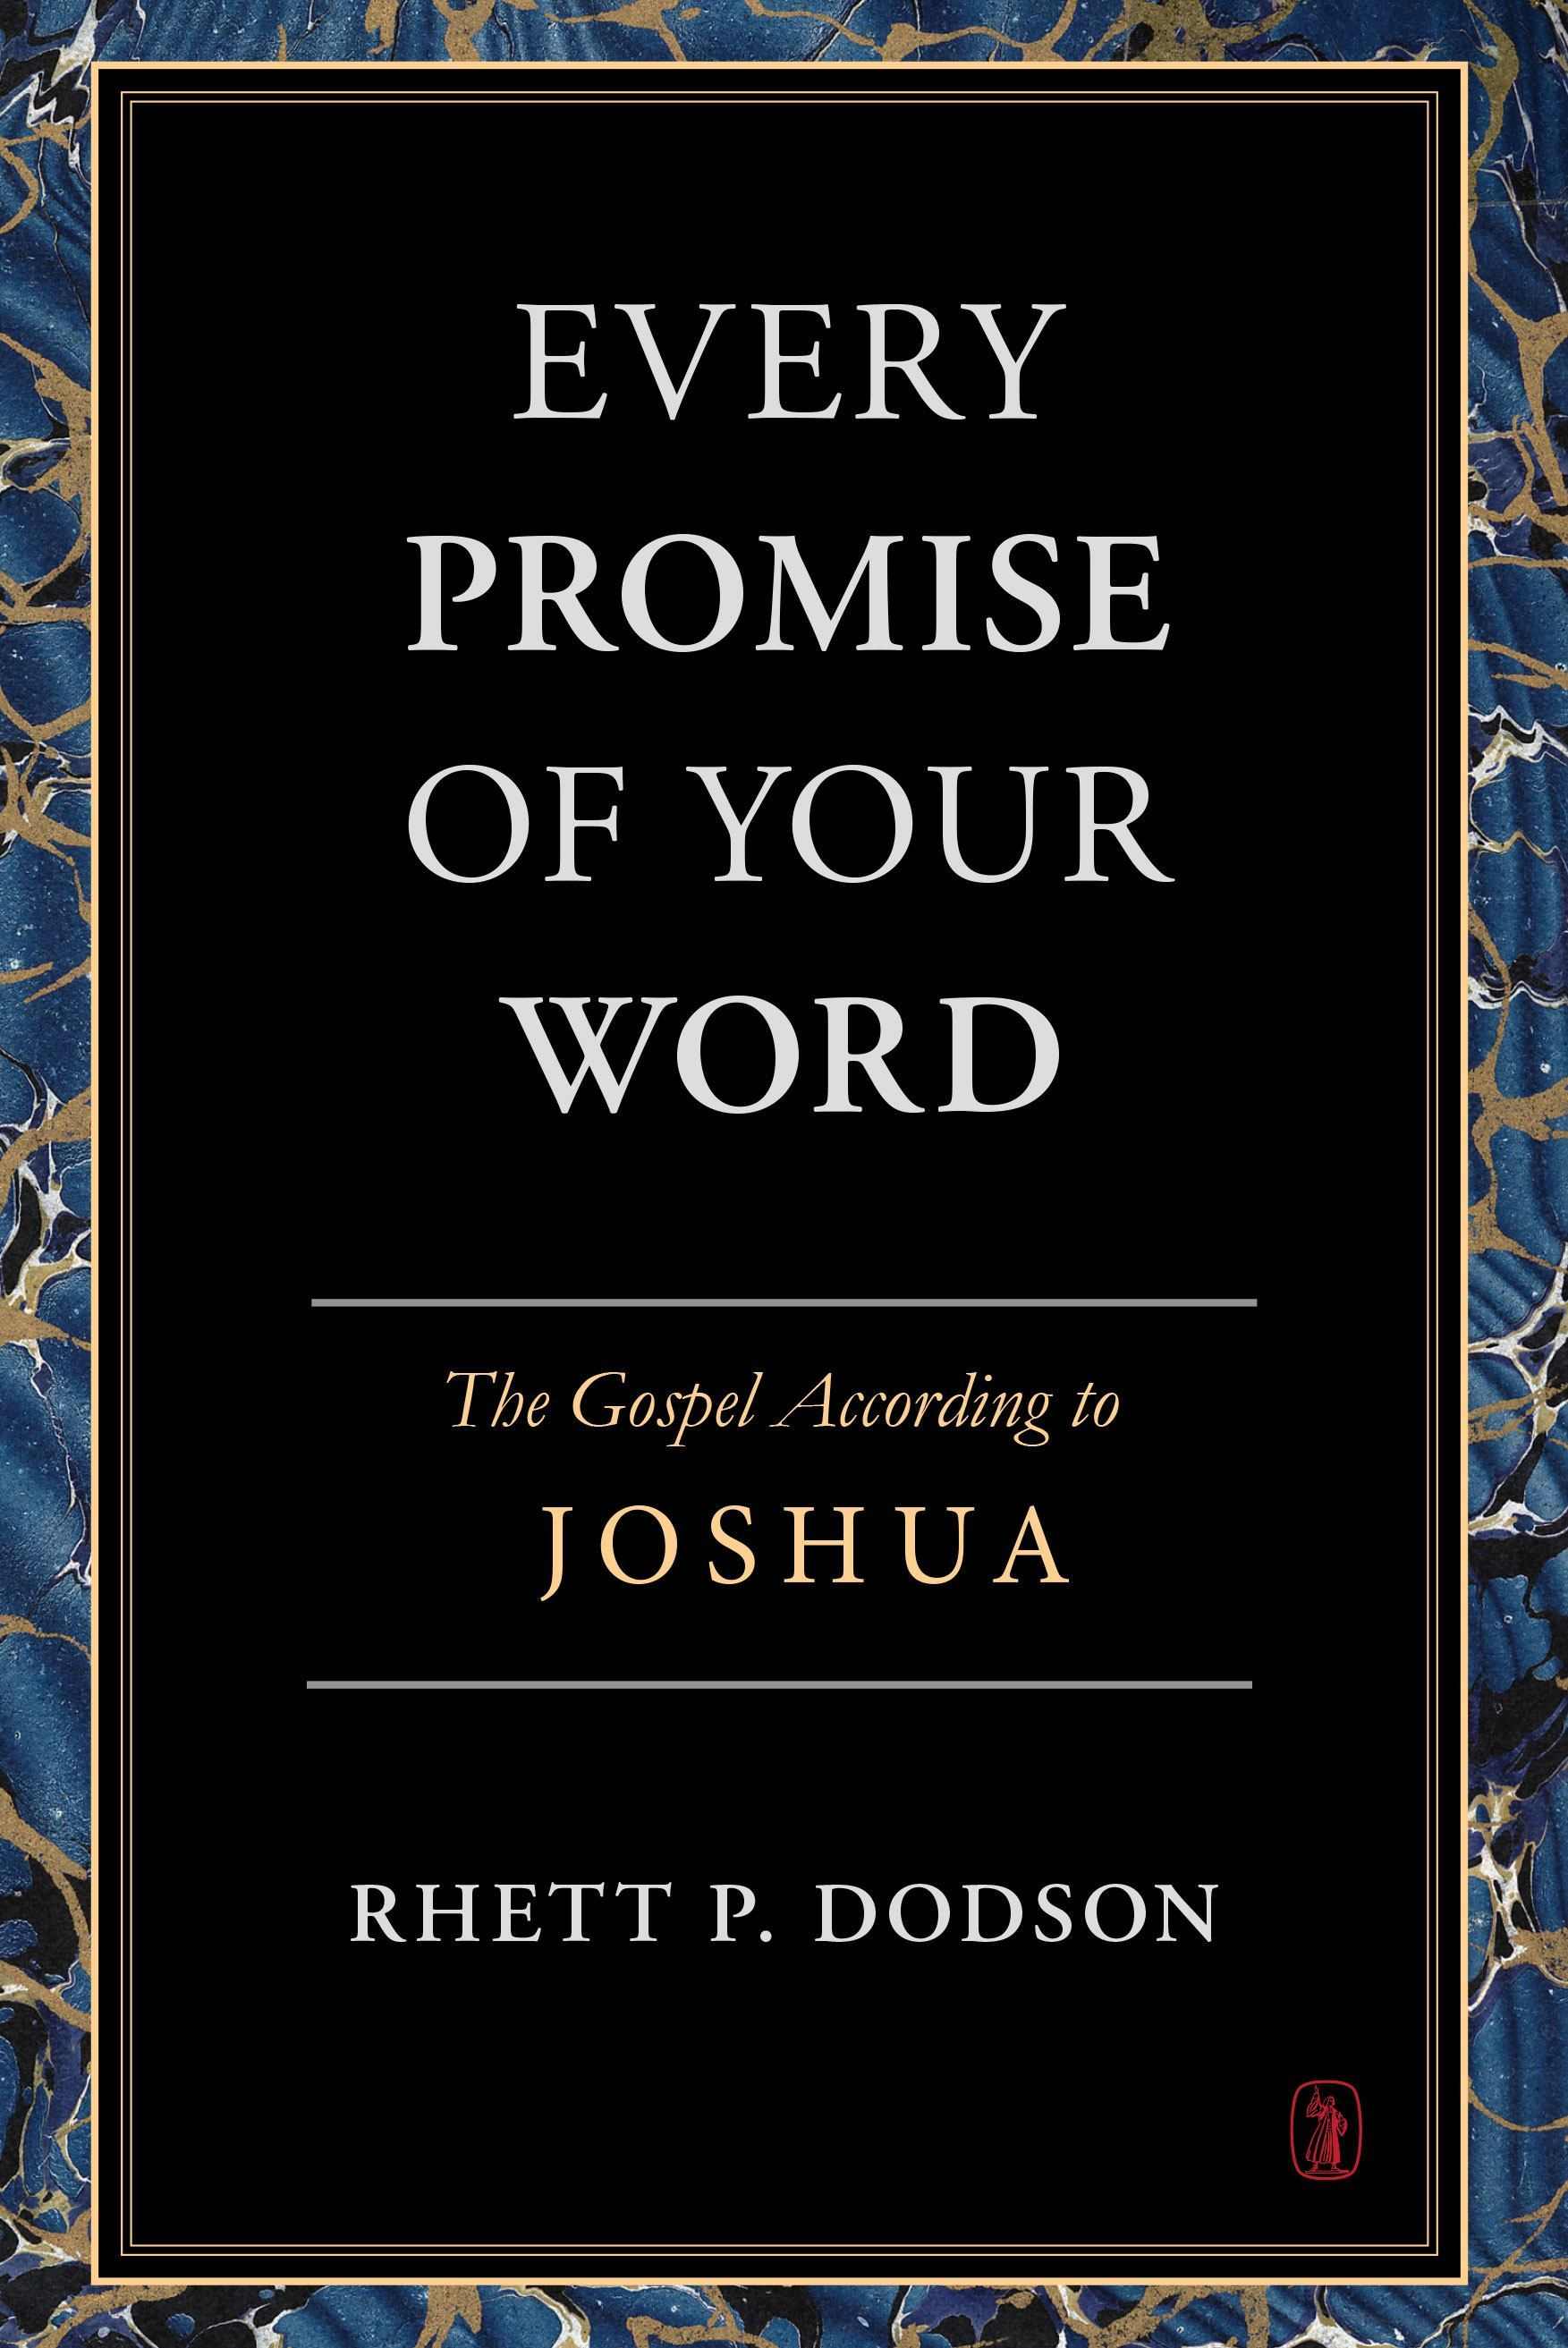 cover image for 'Every Promise of Your Word' by Rhett Dodson